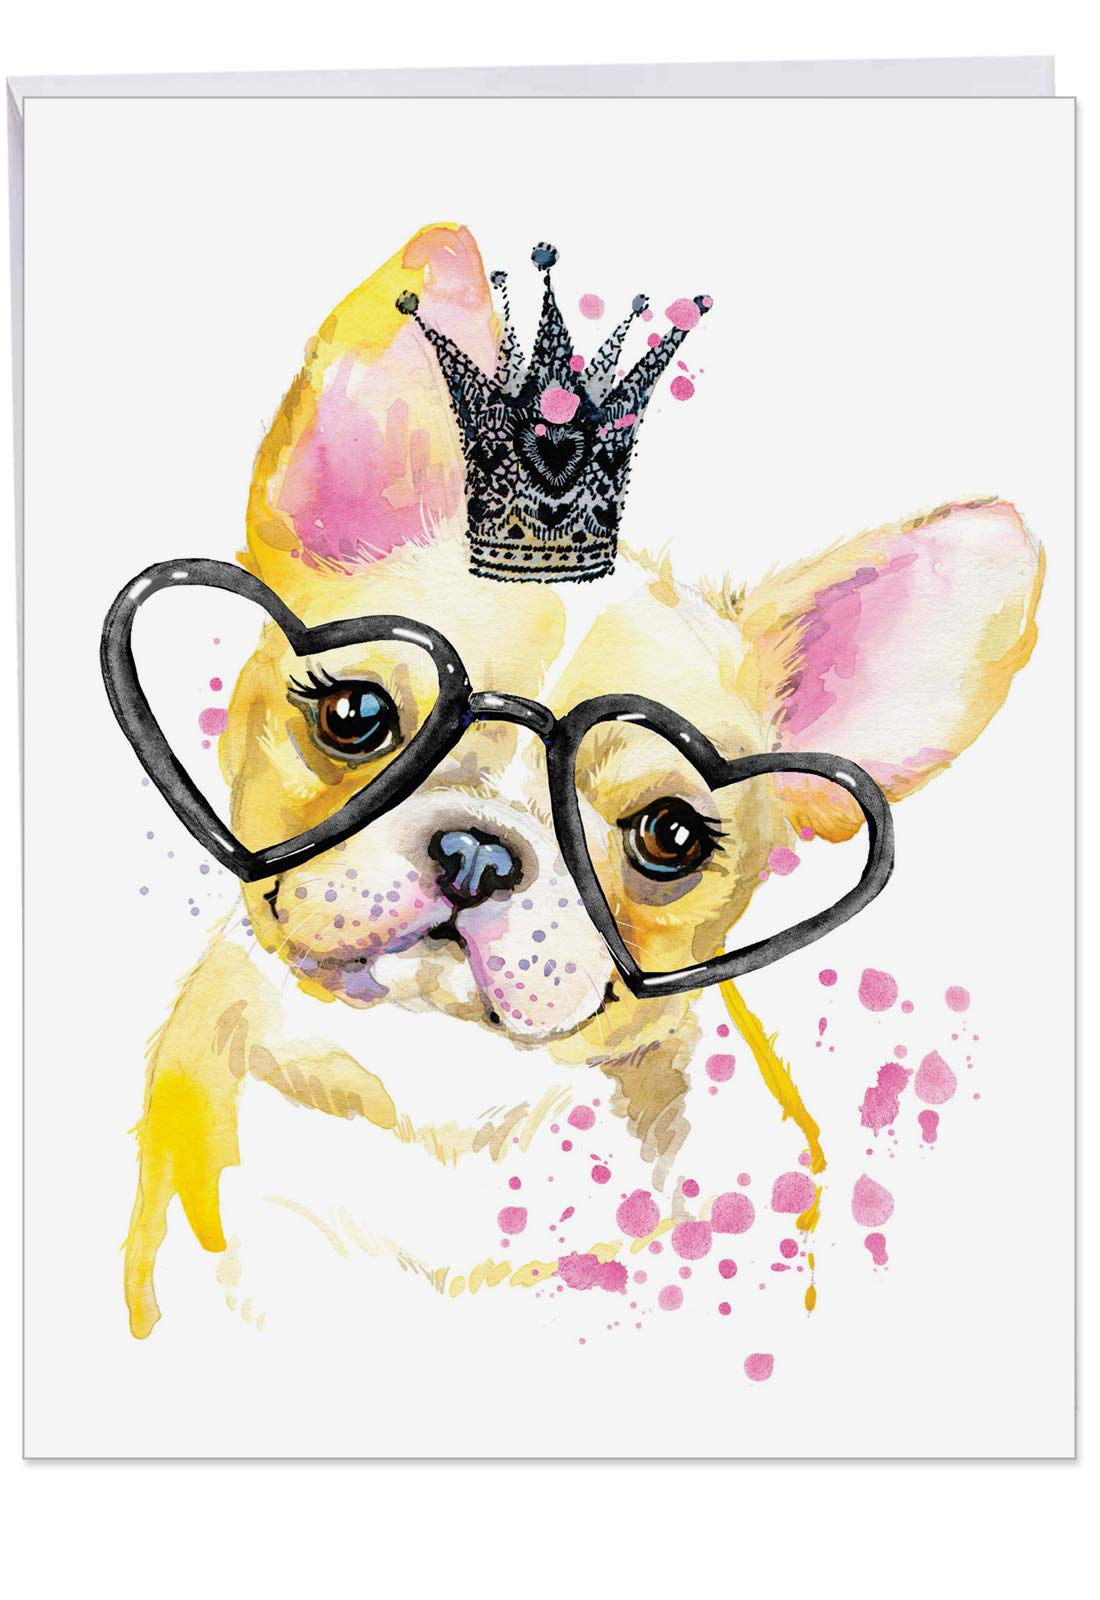 Funky Colorful Creature Dogs - Watercolor Birthday Card with Envelope (Large 8.5 x 11 Inch) - Colorful French Bulldog Pet, Animal Greeting Cards for Kids, Adults - Bday Appreciation Card J6749ABDG